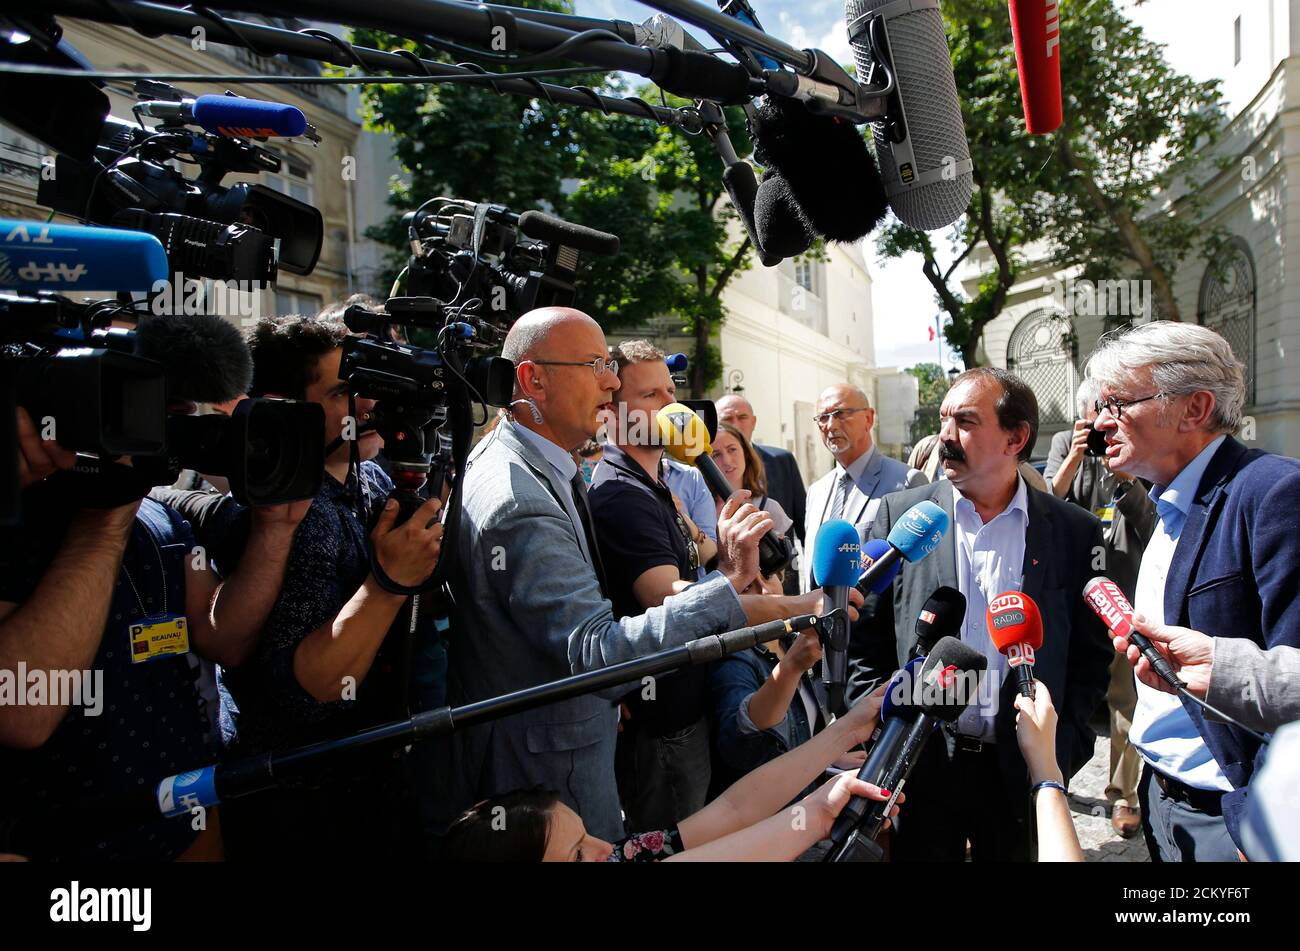 French Force Ouvriere (FO) labour union General Secretary Jean-Claude Mailly (R) and French CGT trade union head Philippe Martinez (2ndR) speak with journalists as they leave after a meeting with the Interior minister in Paris, France, June 22, 2016 after French police banned a planned demonstration this week against labour reforms, bringing to a head a stand-off between the government and trade unions which have been spearheading protests against the changes for months.  REUTERS/Stephane Mahe Foto de stock